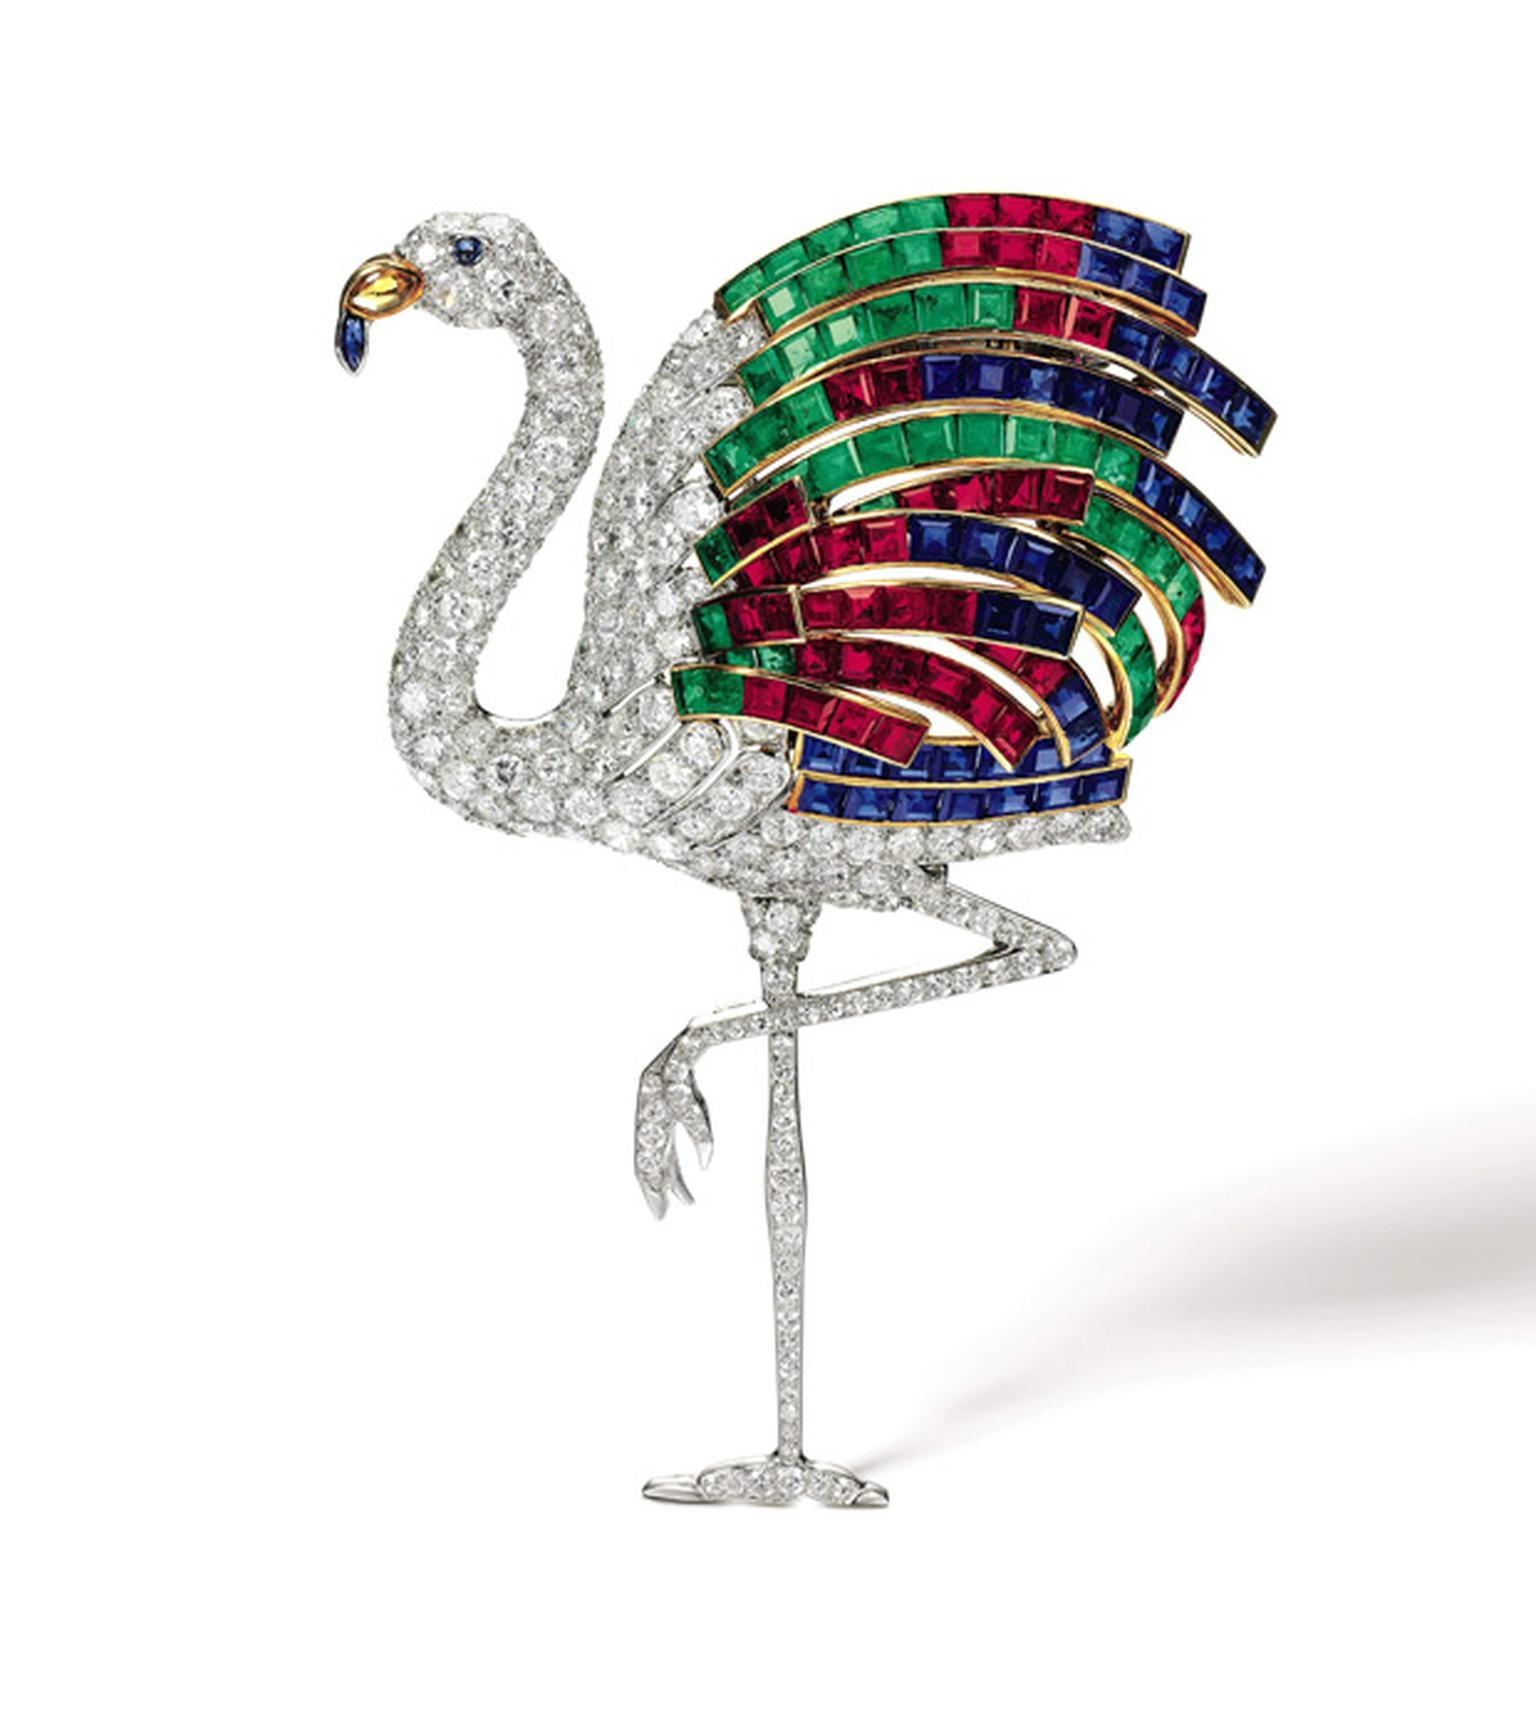 Lot 20 Cartier Flamingo Clip 1940